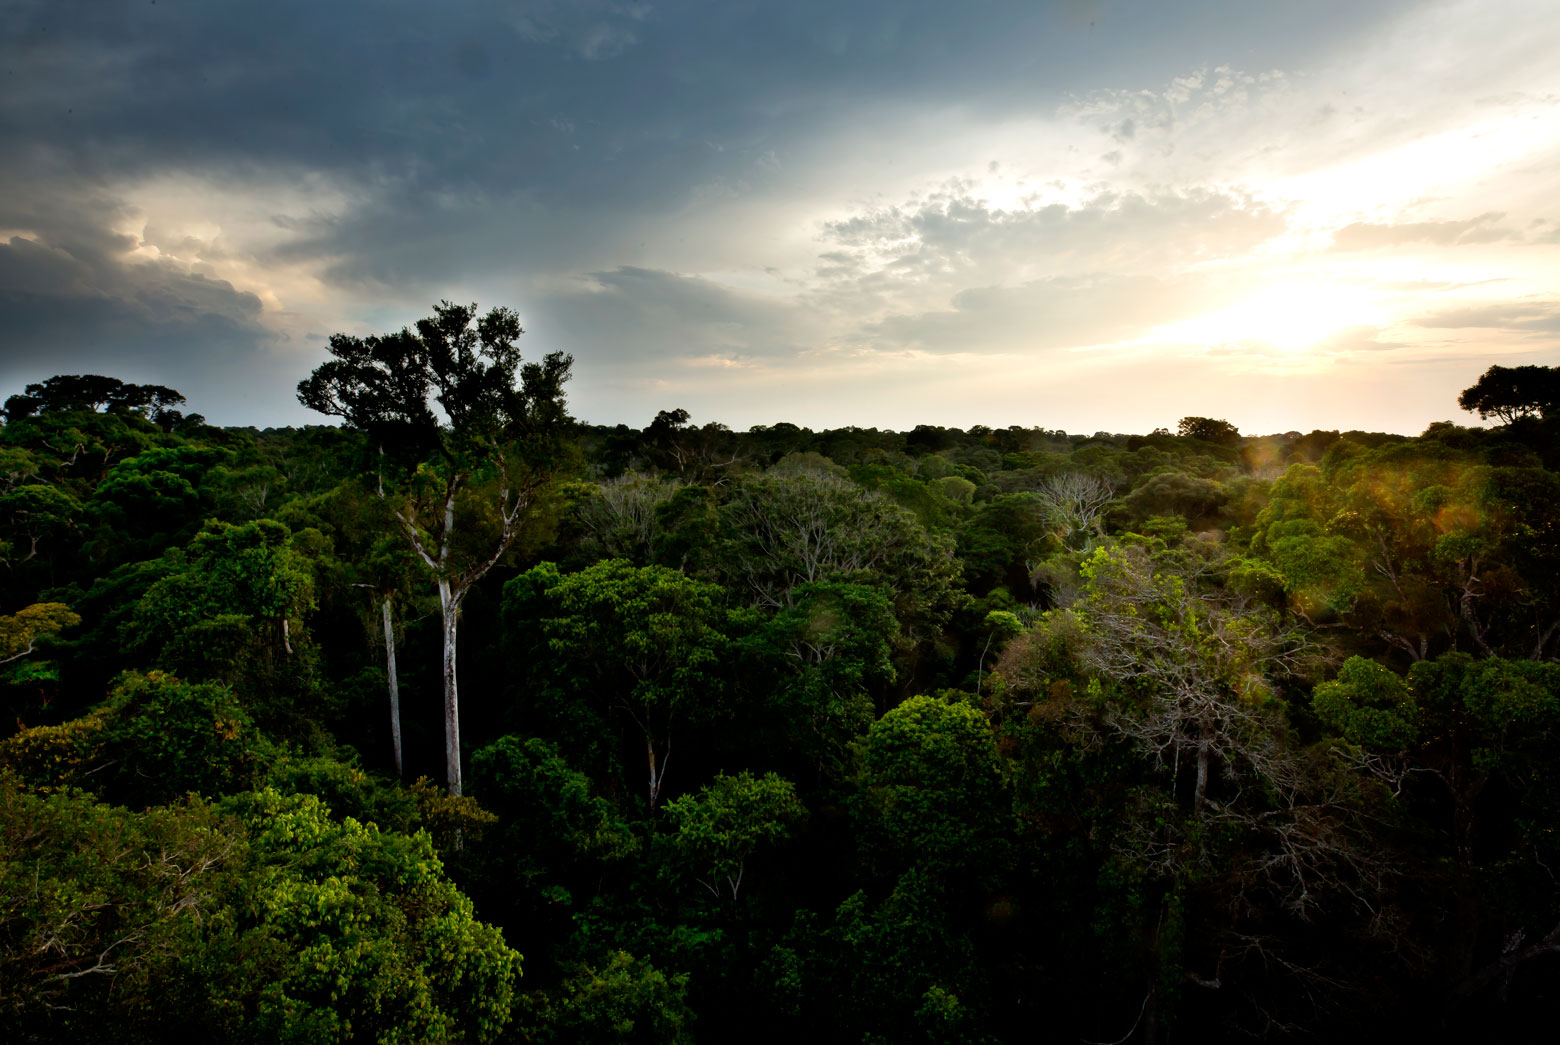 Above the canopy of the Amazon rainforest.